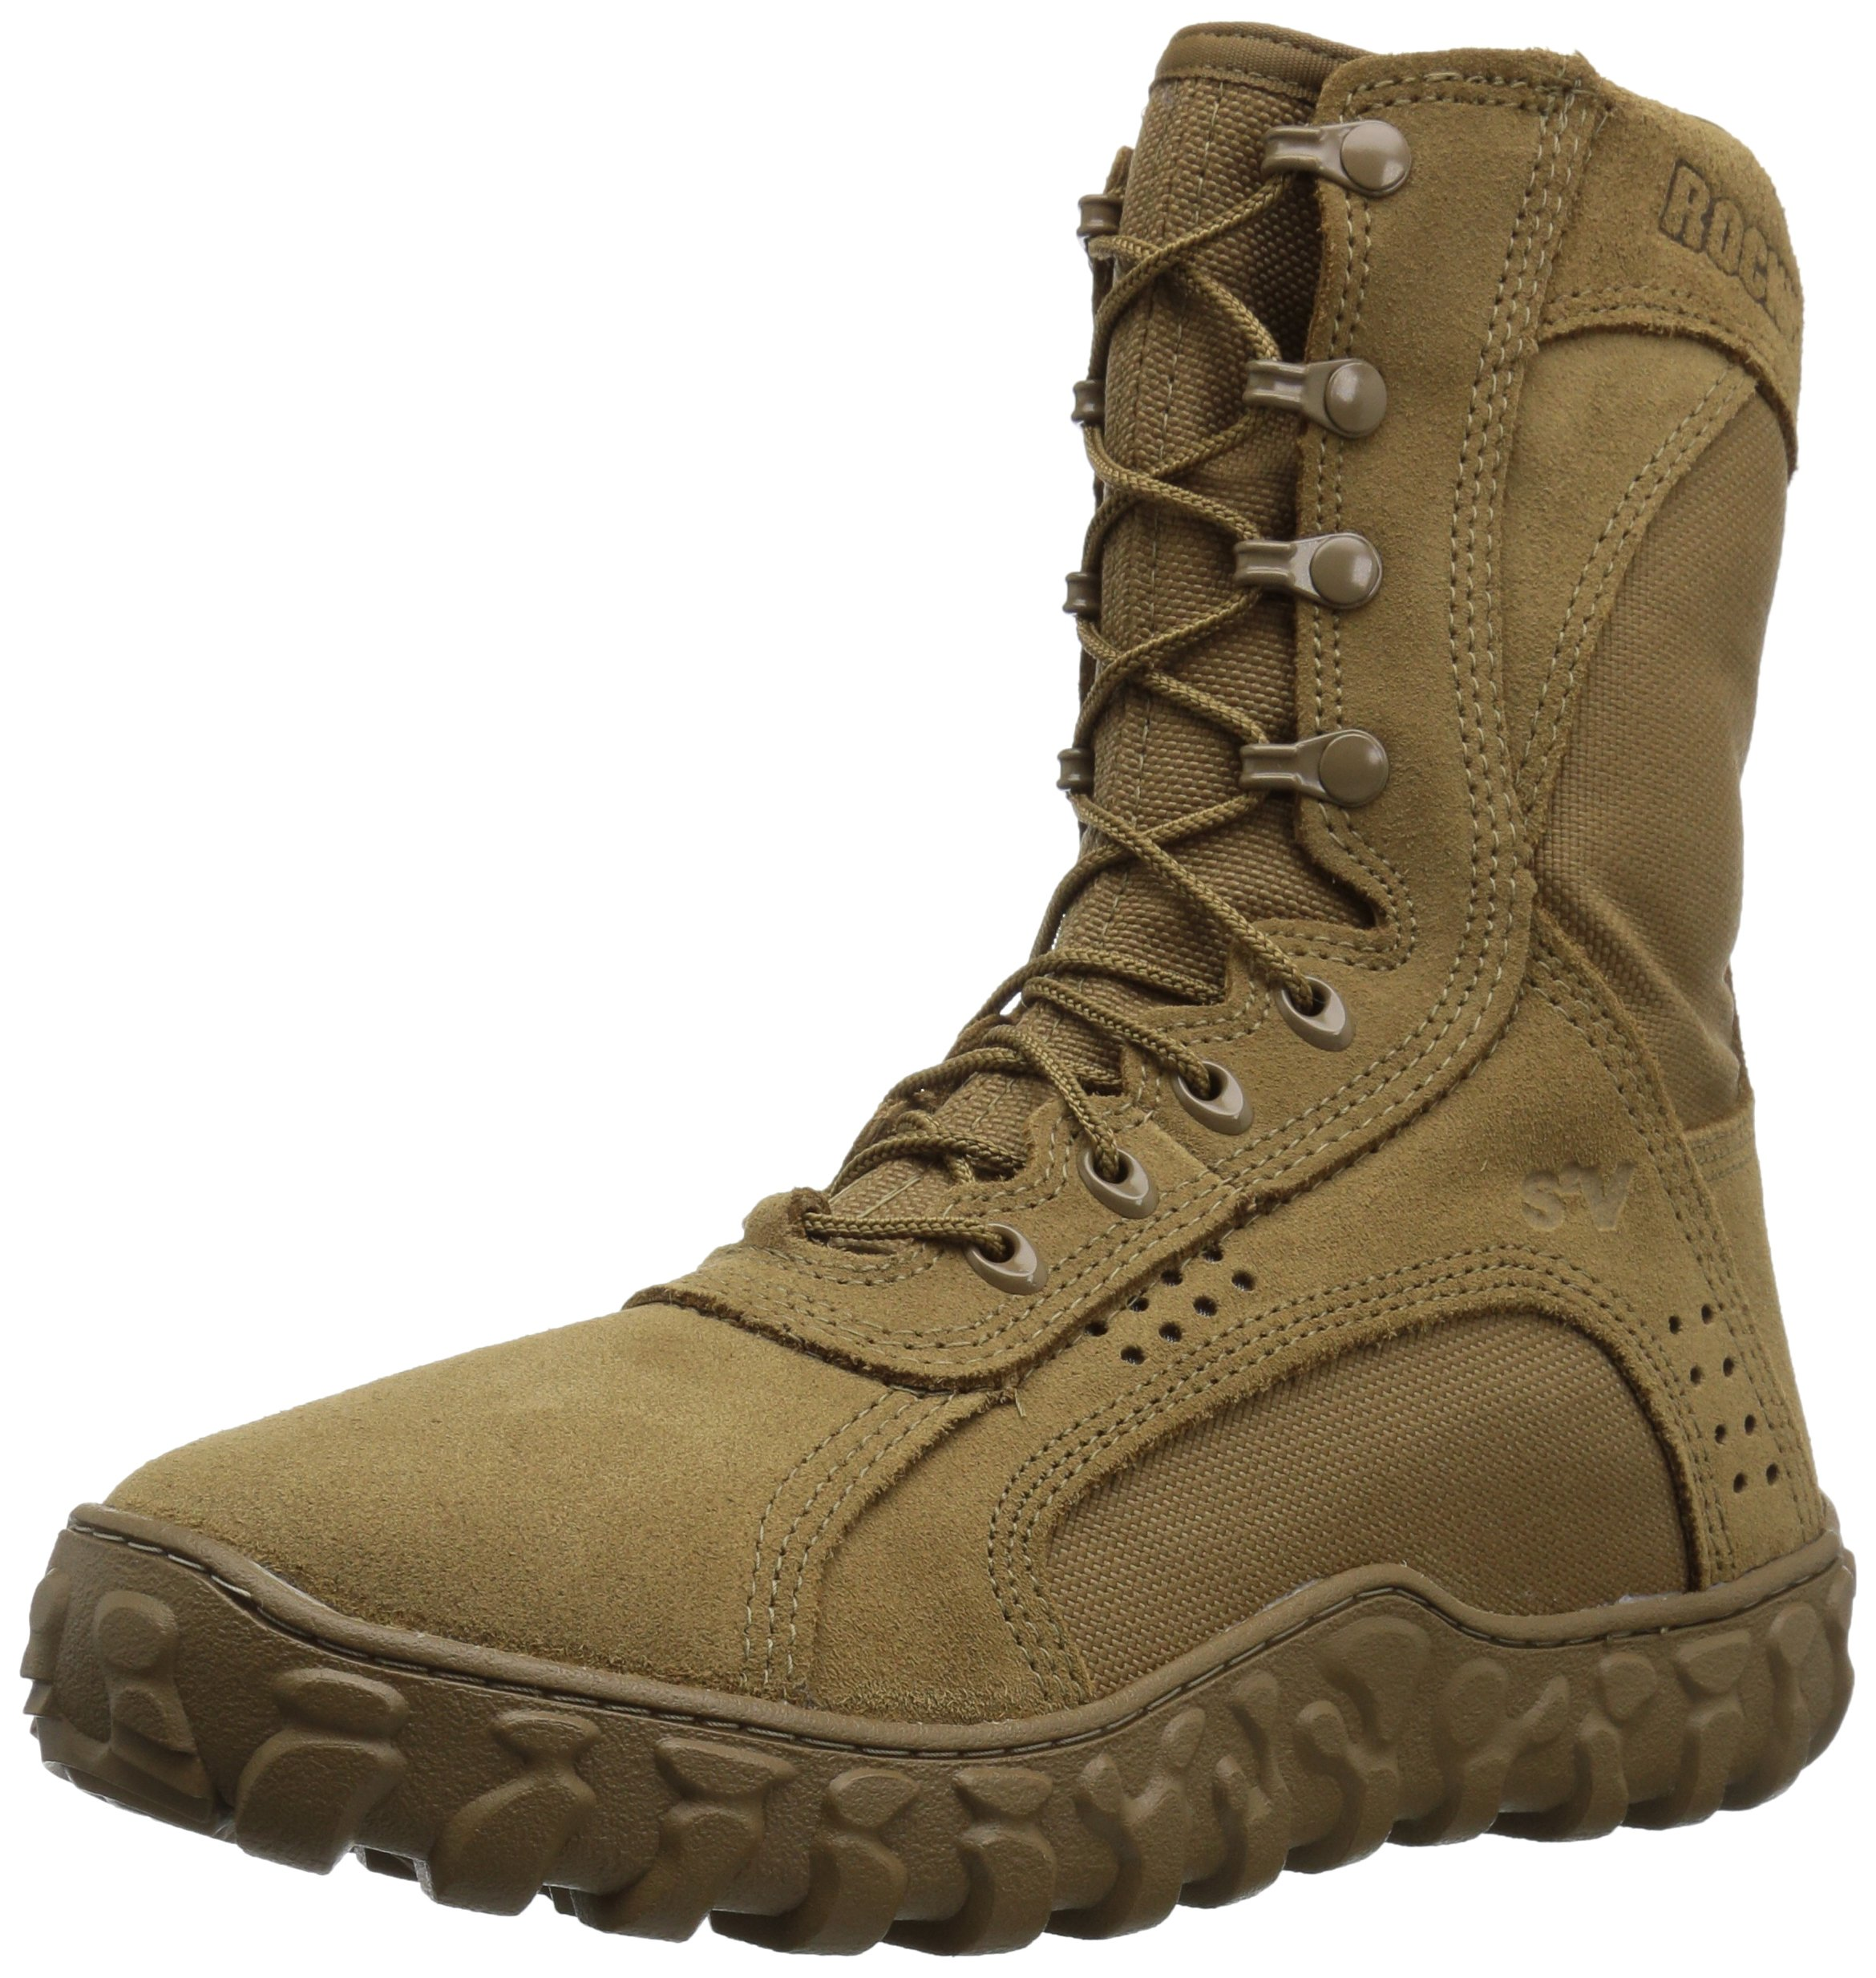 Rocky Men's RKC050 Military and Tactical Boot, Coyote Brown, 9 W US by Rocky